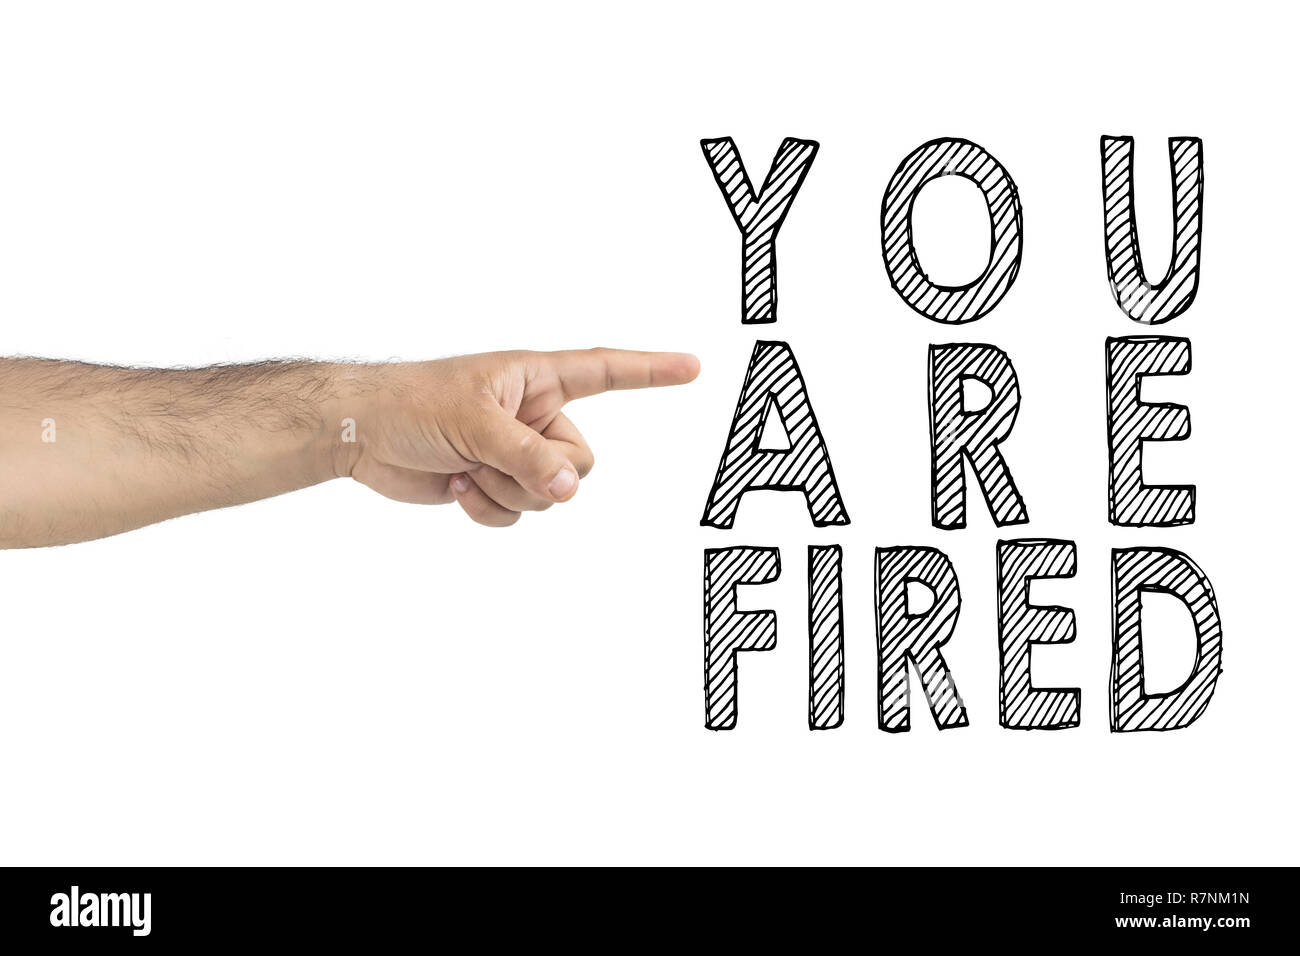 You are fired. boss gesturing way out hand sign with index finger. BUSINESSMAN FIRED EMPLOYEE. HR, business, concept. Stock Photo